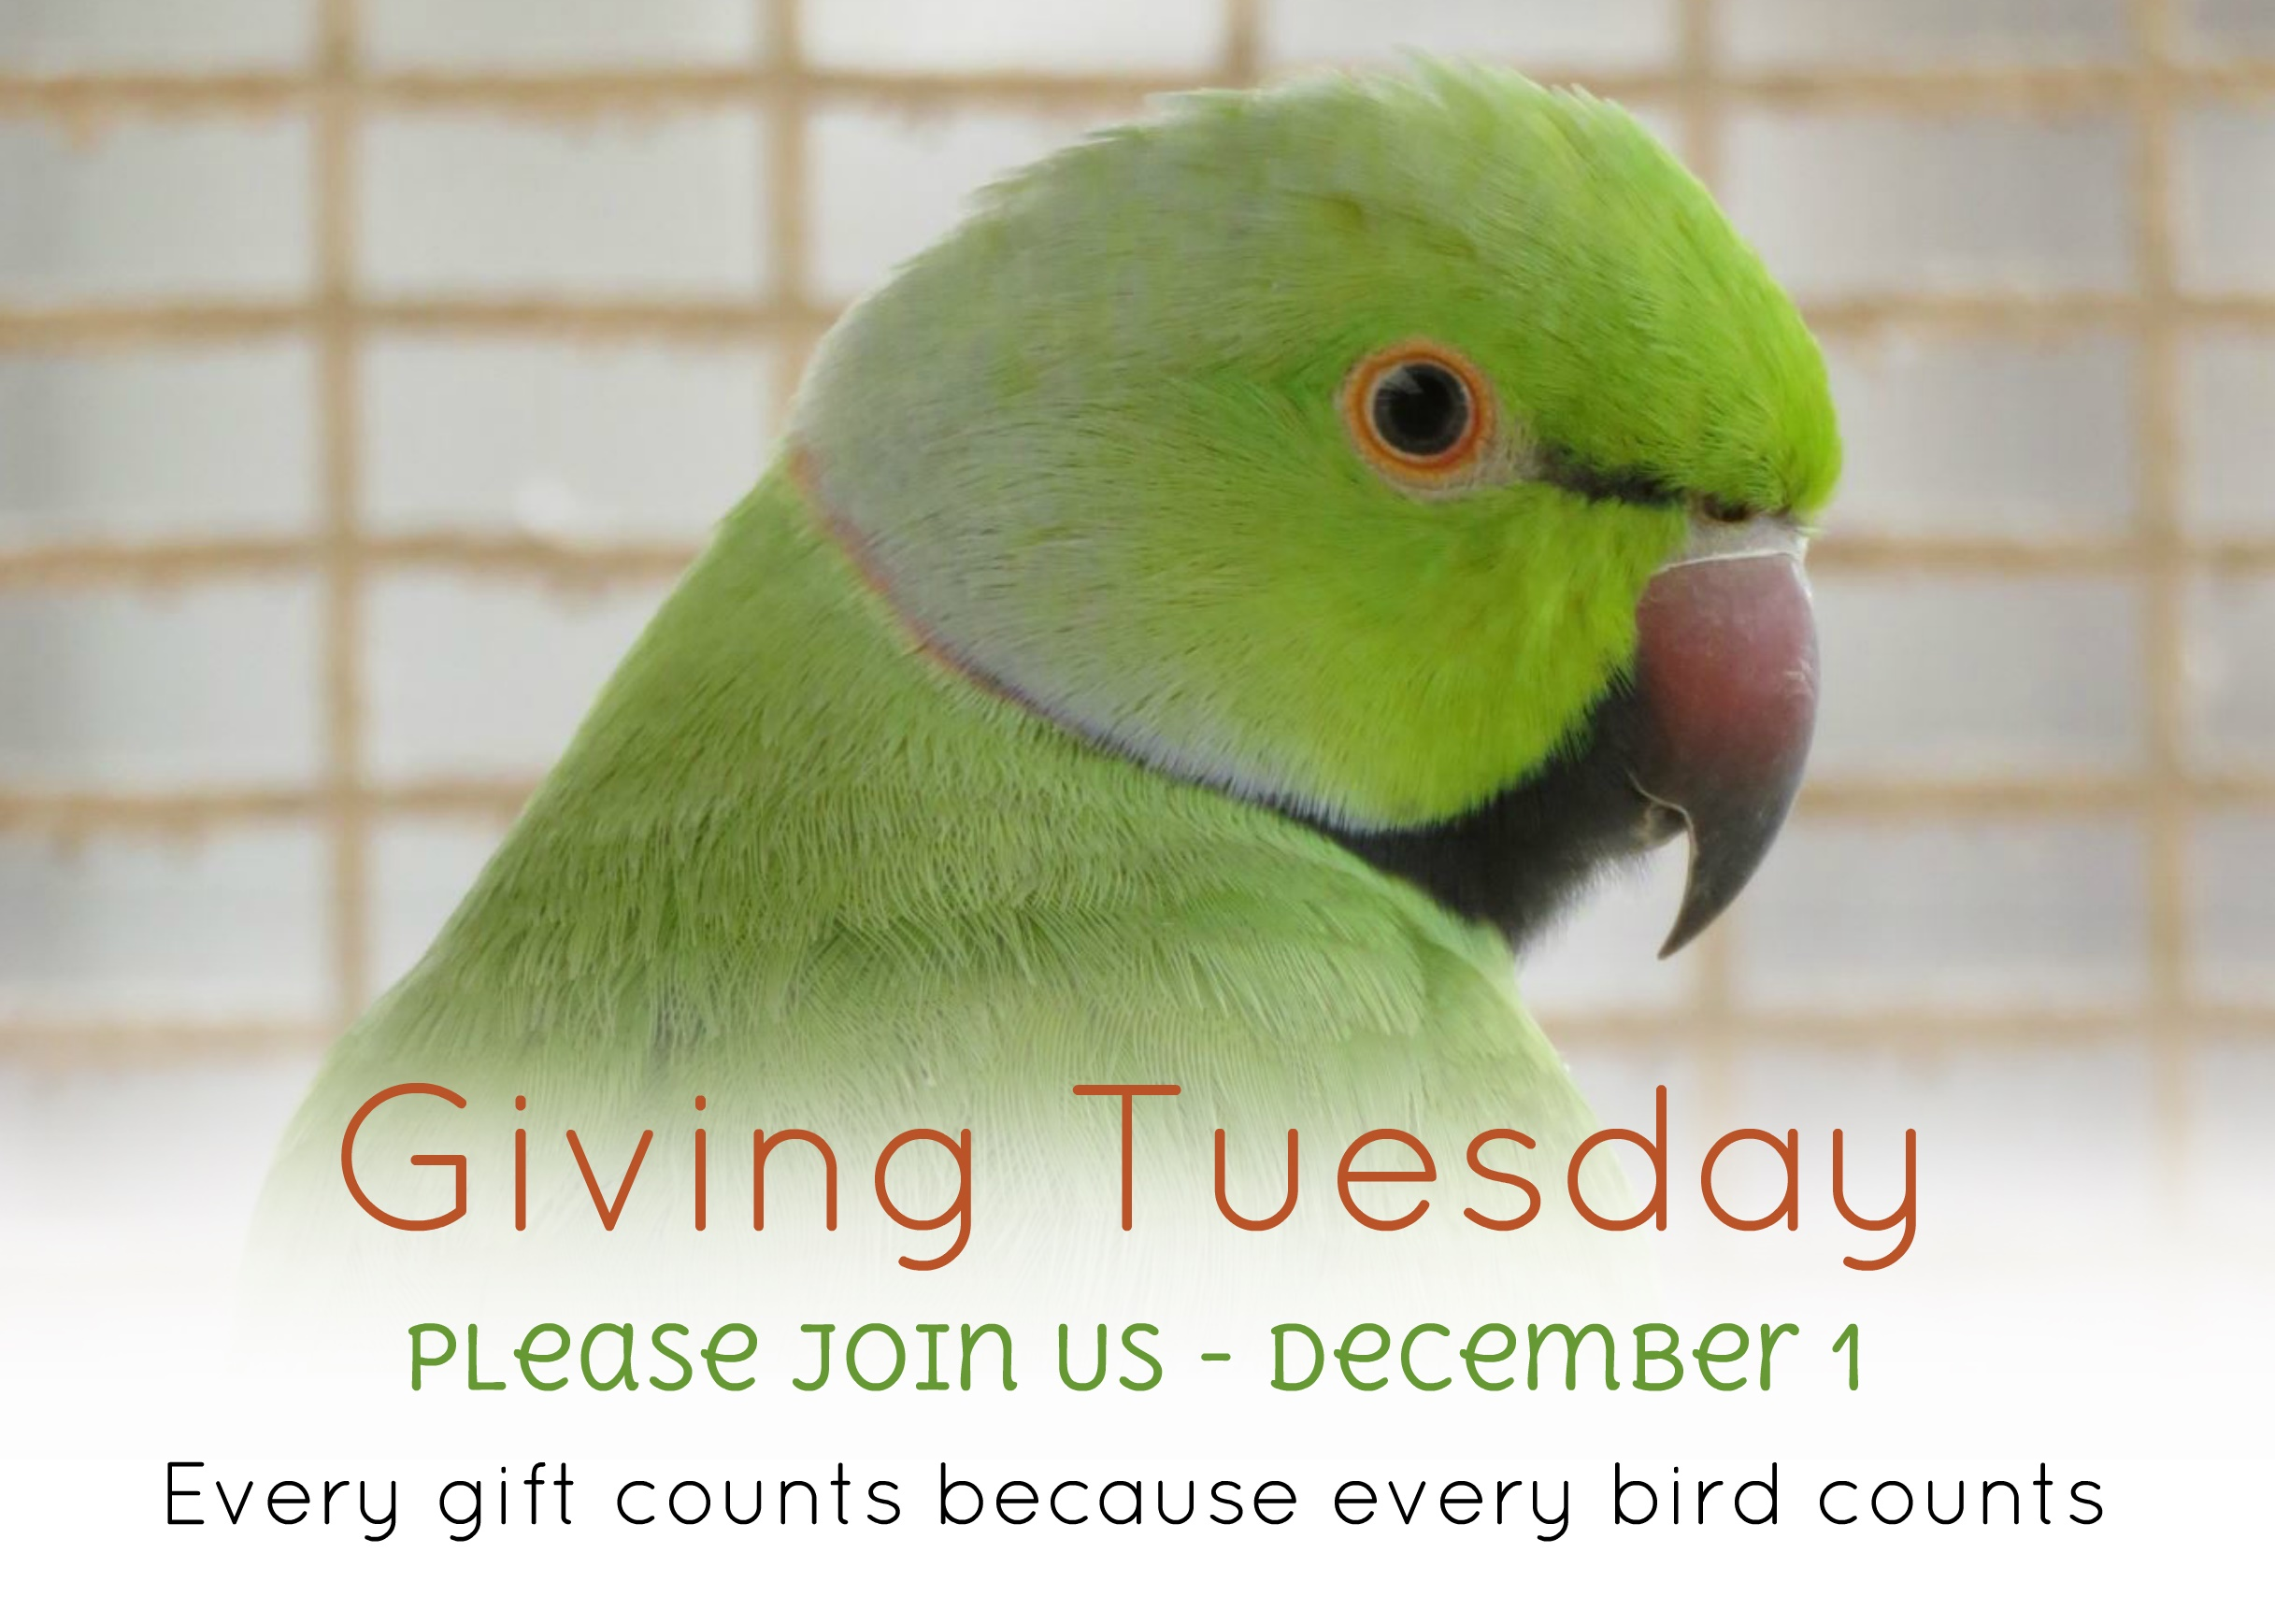 Join Us For #GivingTuesday – Dec 1